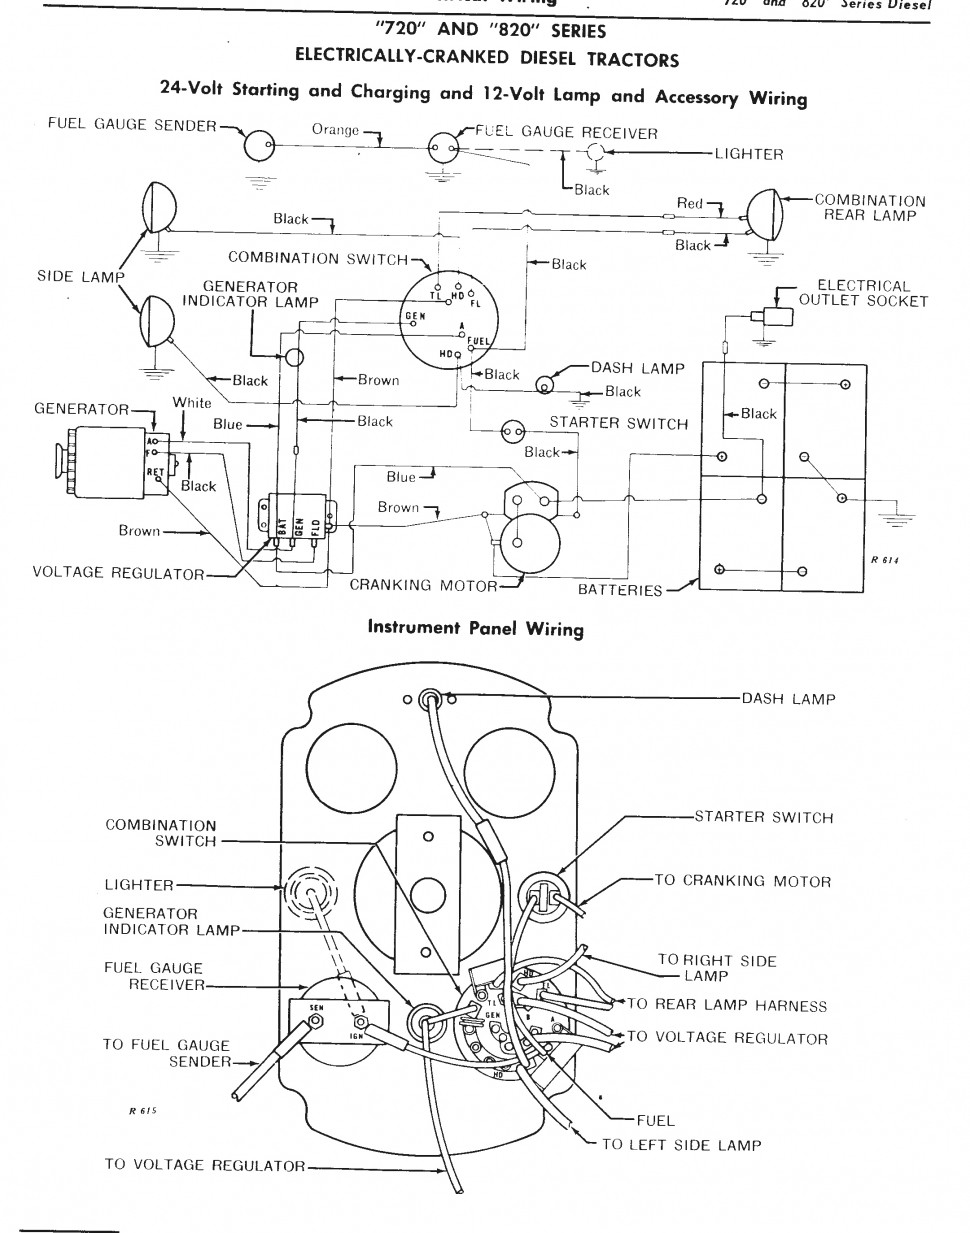 john deere 720 wiring diagram circuit wiring diagrams best 4020 light wiring diagram 4020 wiring library allis chalmers 720 wiring diagram john deere 720 wiring diagram circuit